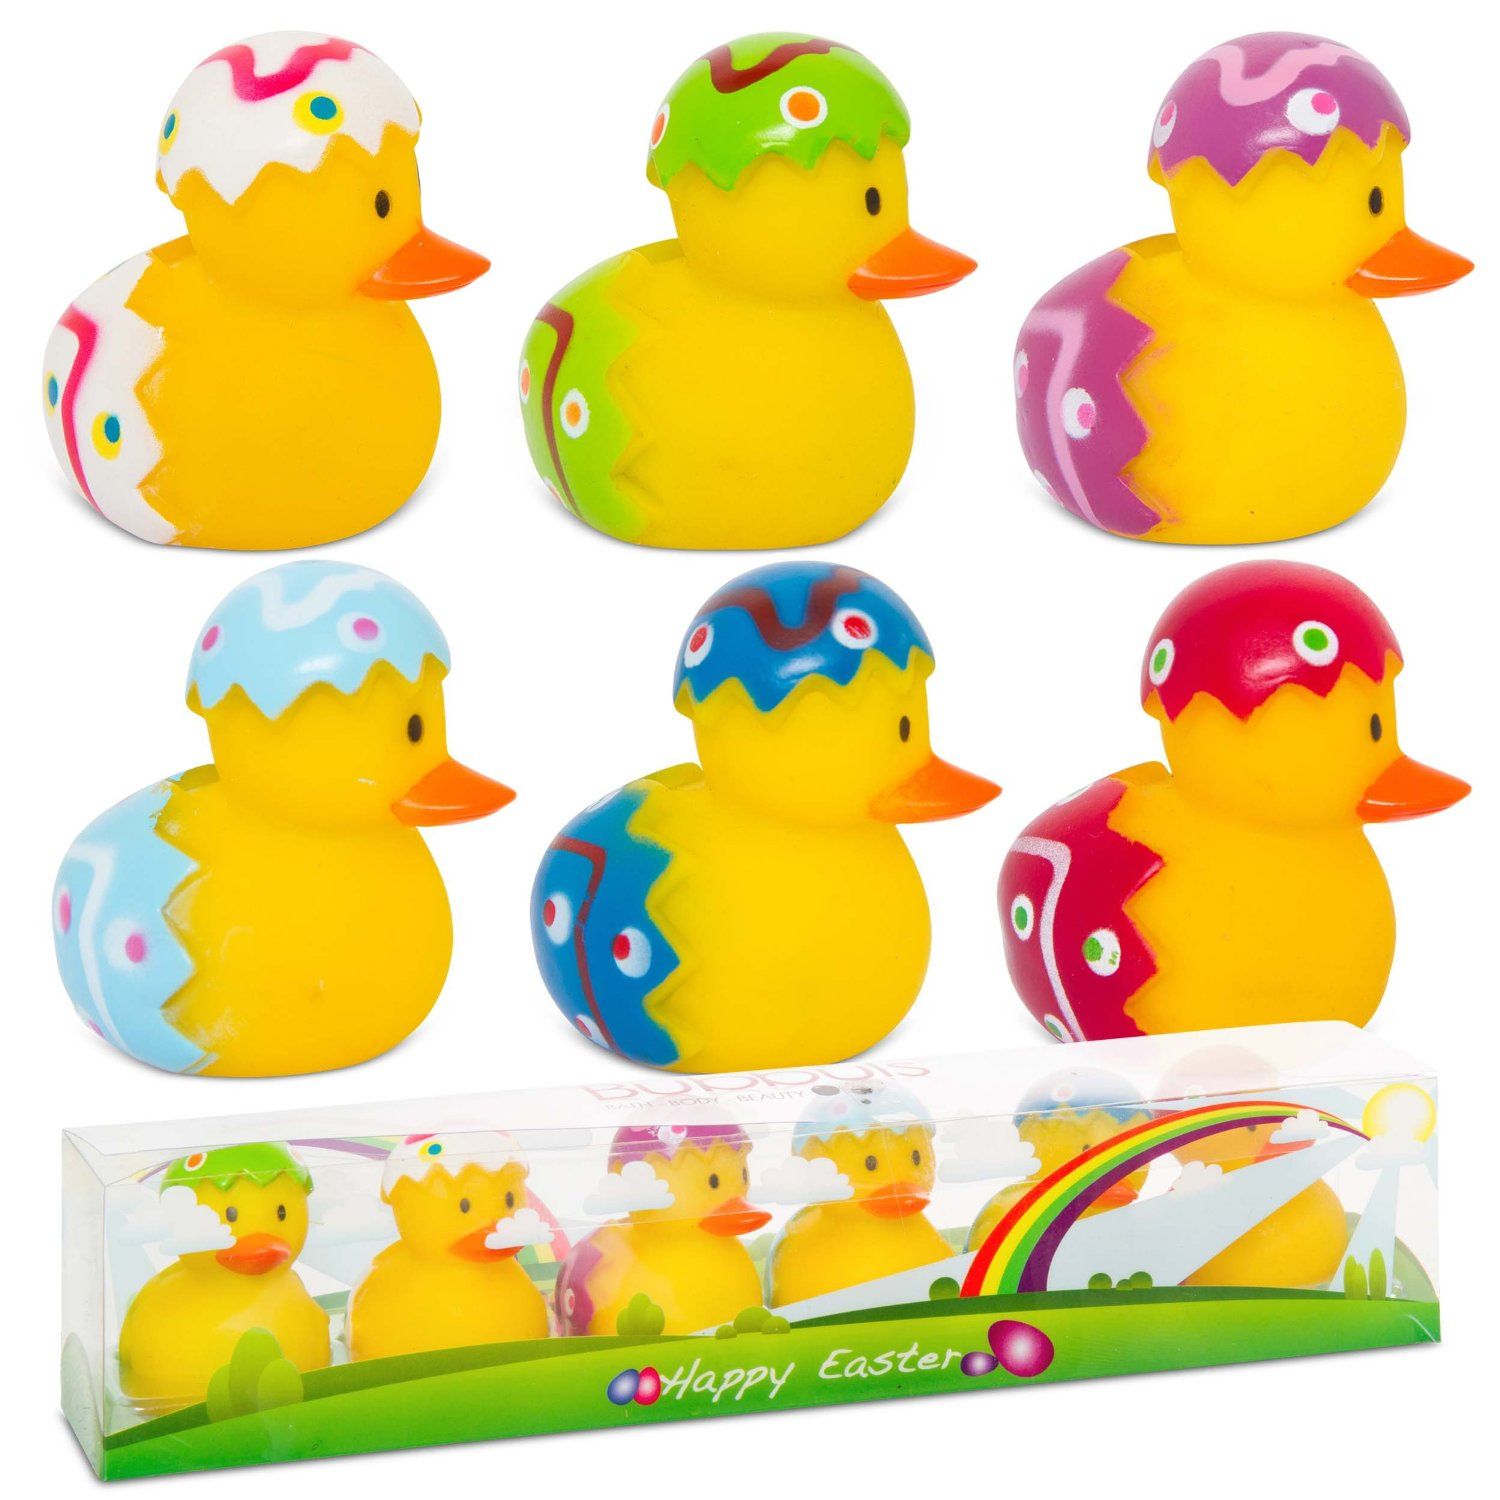 Fun Time Toys : Easter floating gift water small kids yellow bath fun